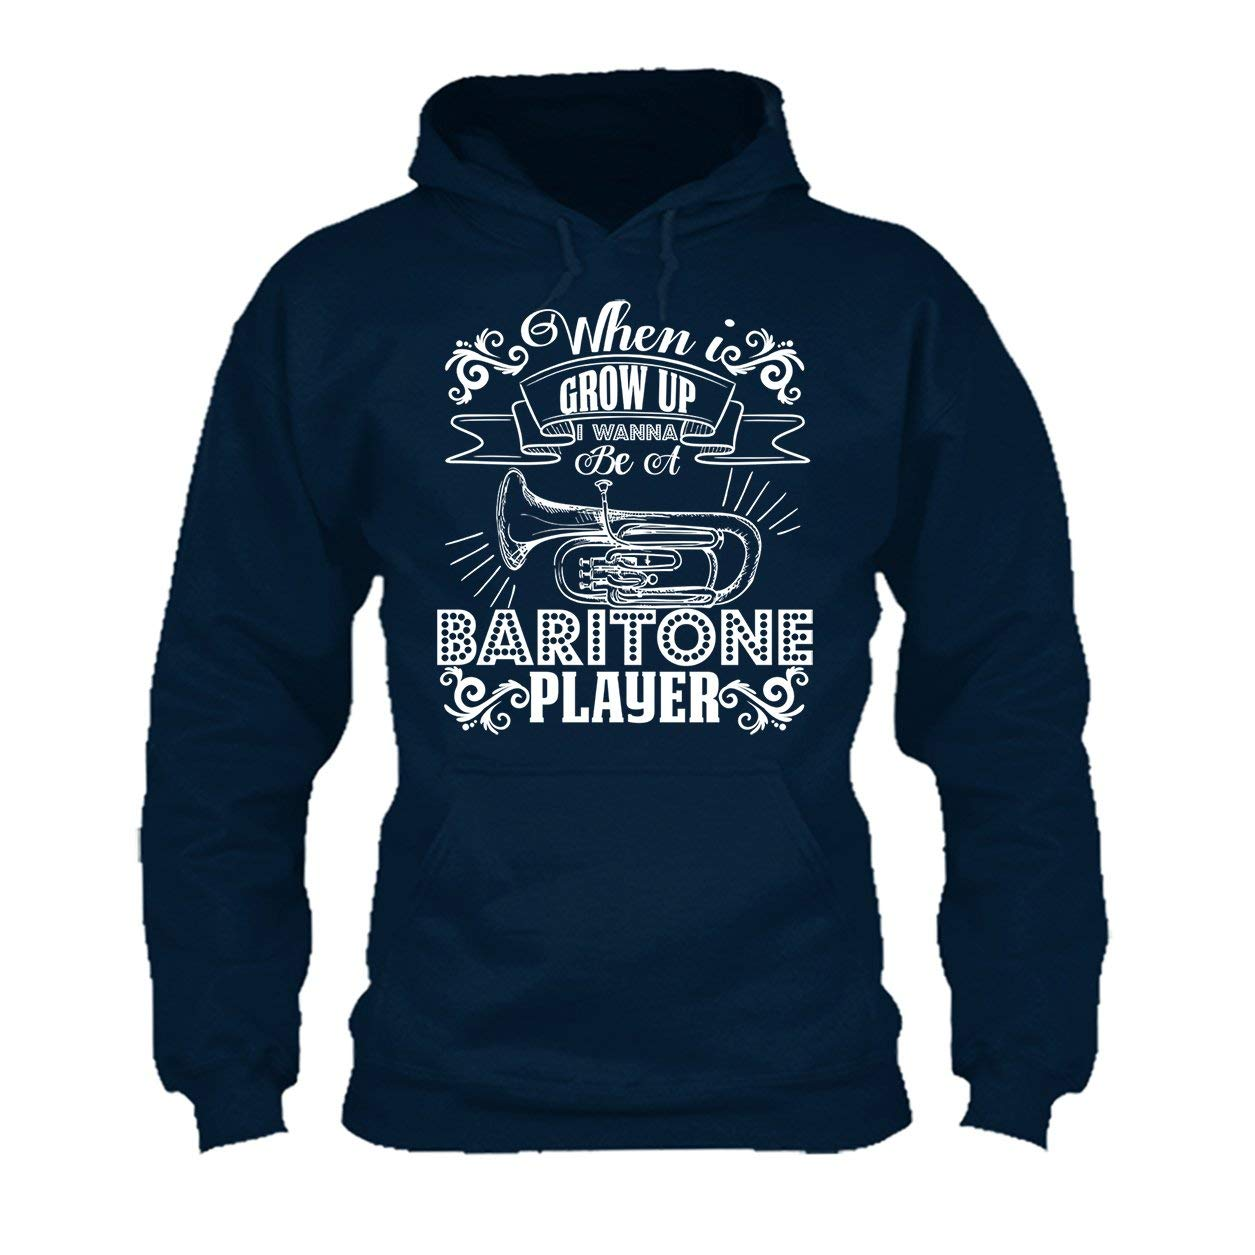 Cool Sweatshirt Hoodie Baritone Player Tee Shirt